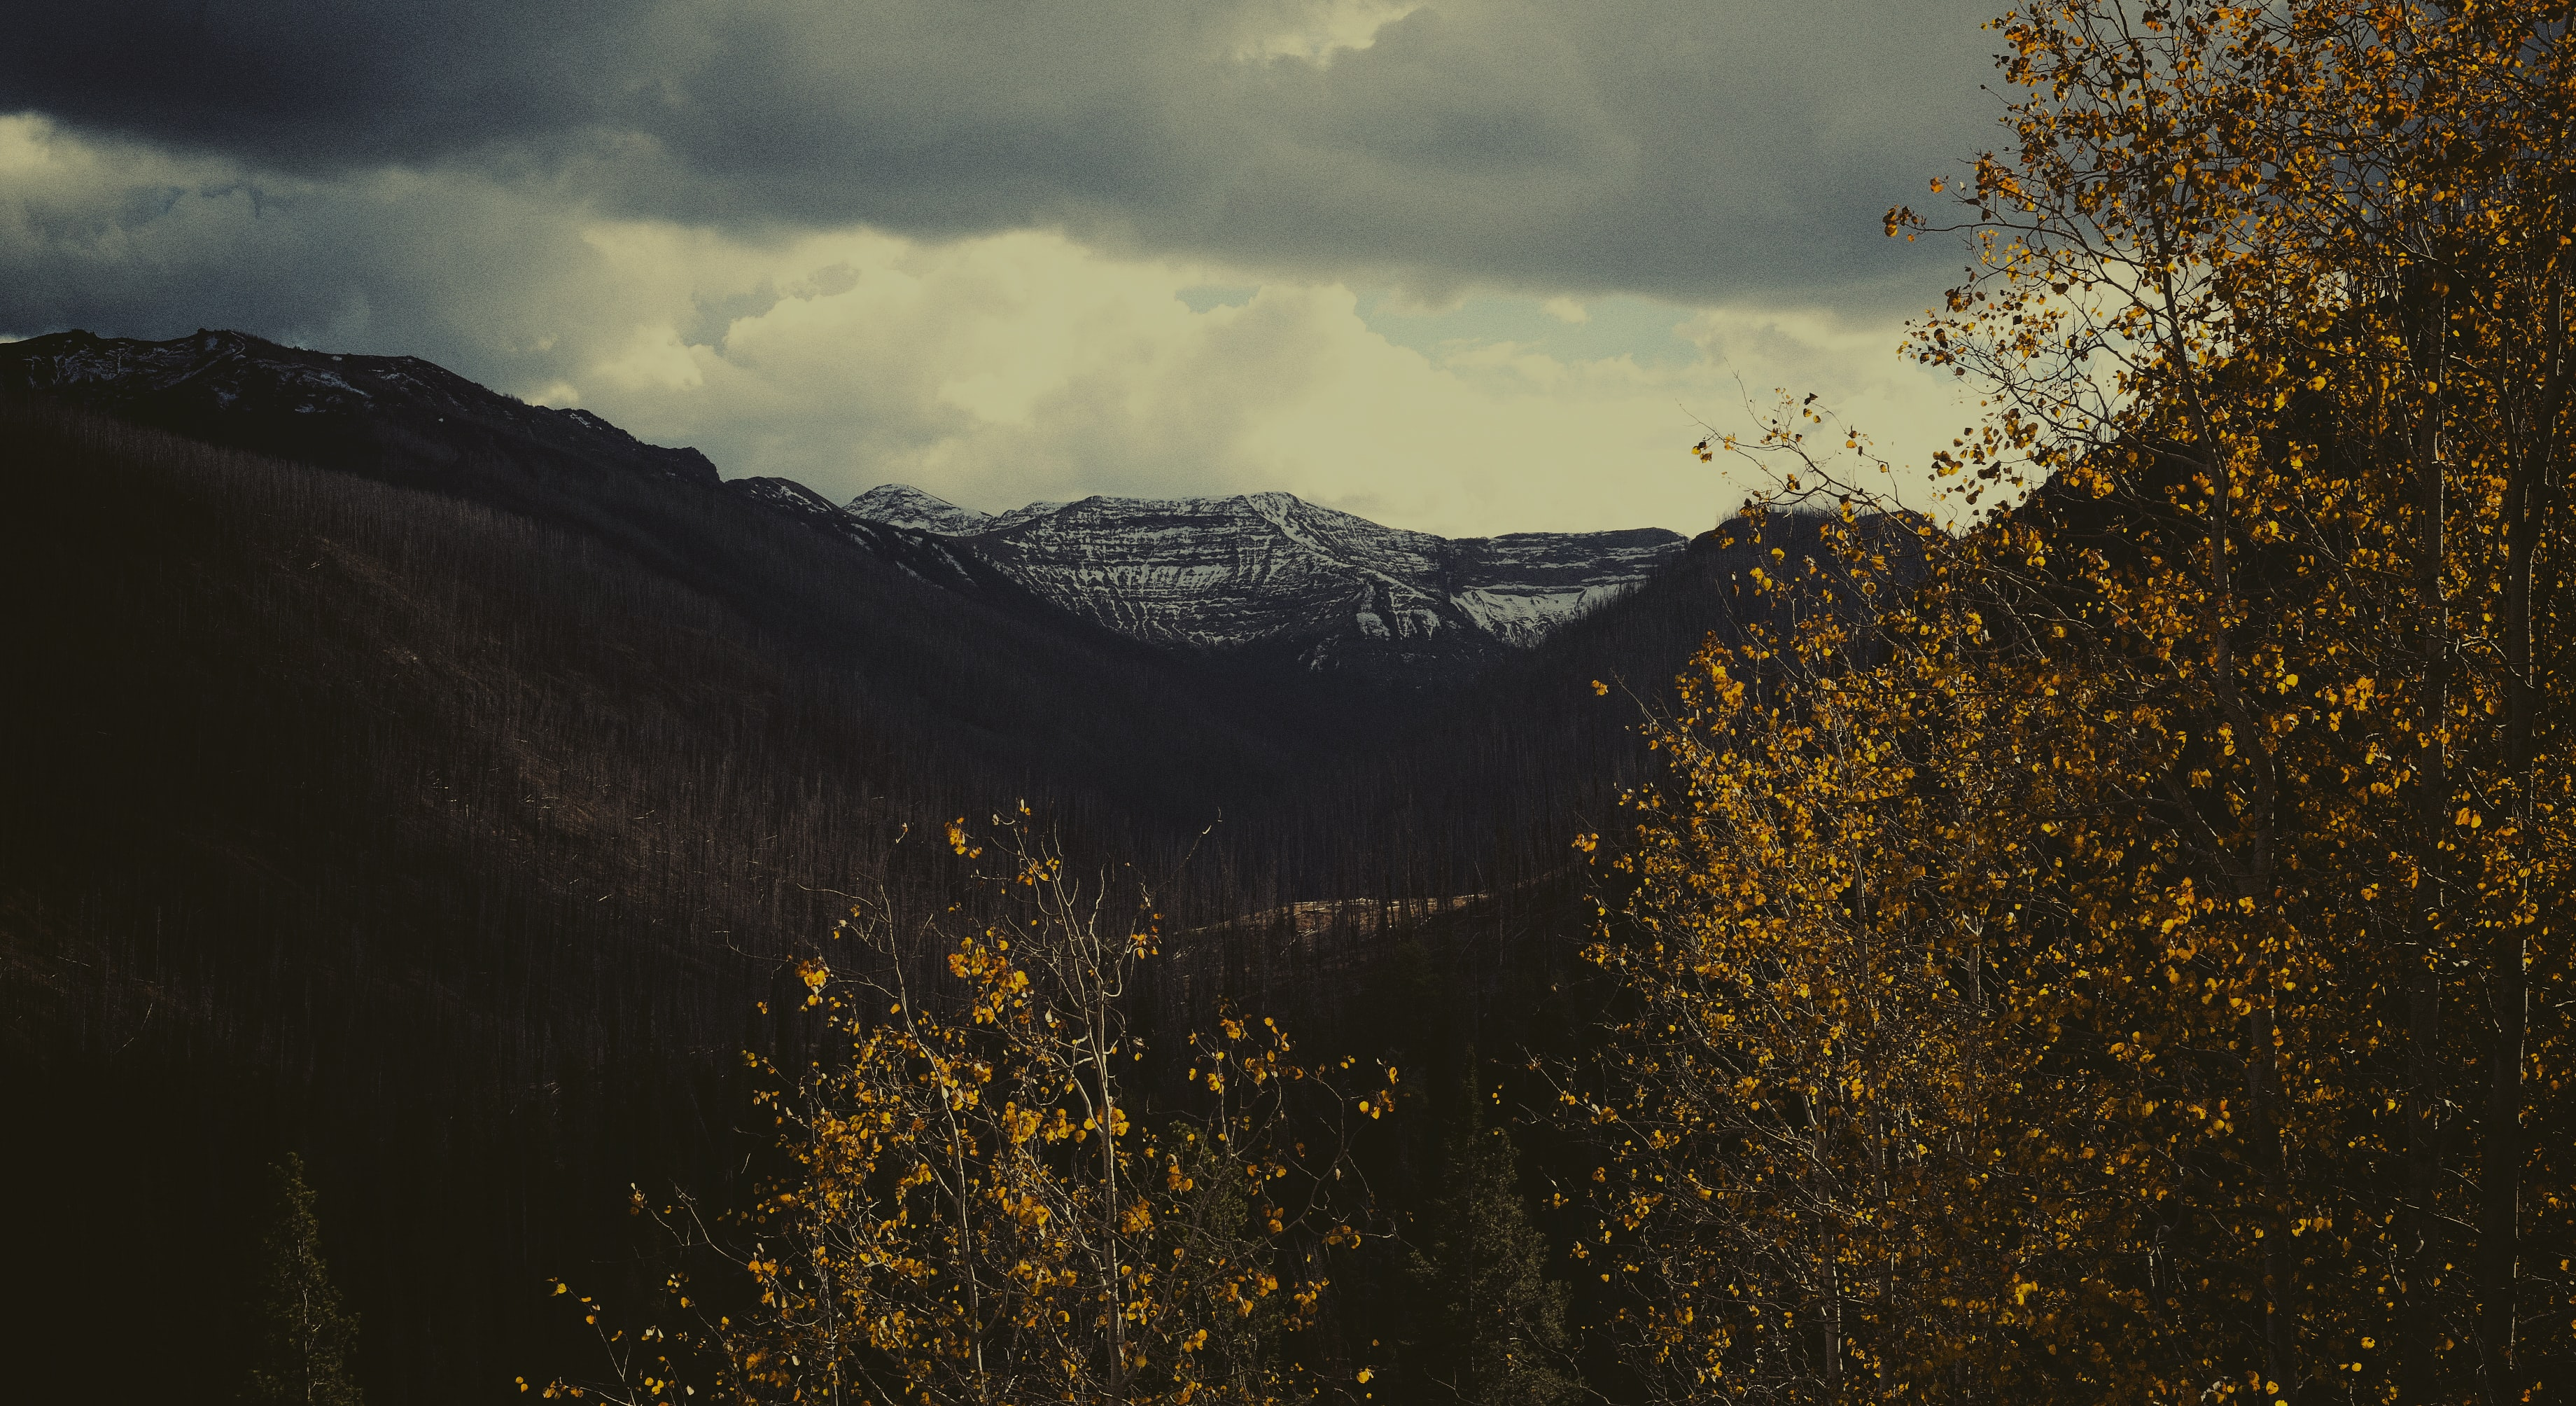 A view through autumn branches on the snow-capped mountains in the distance